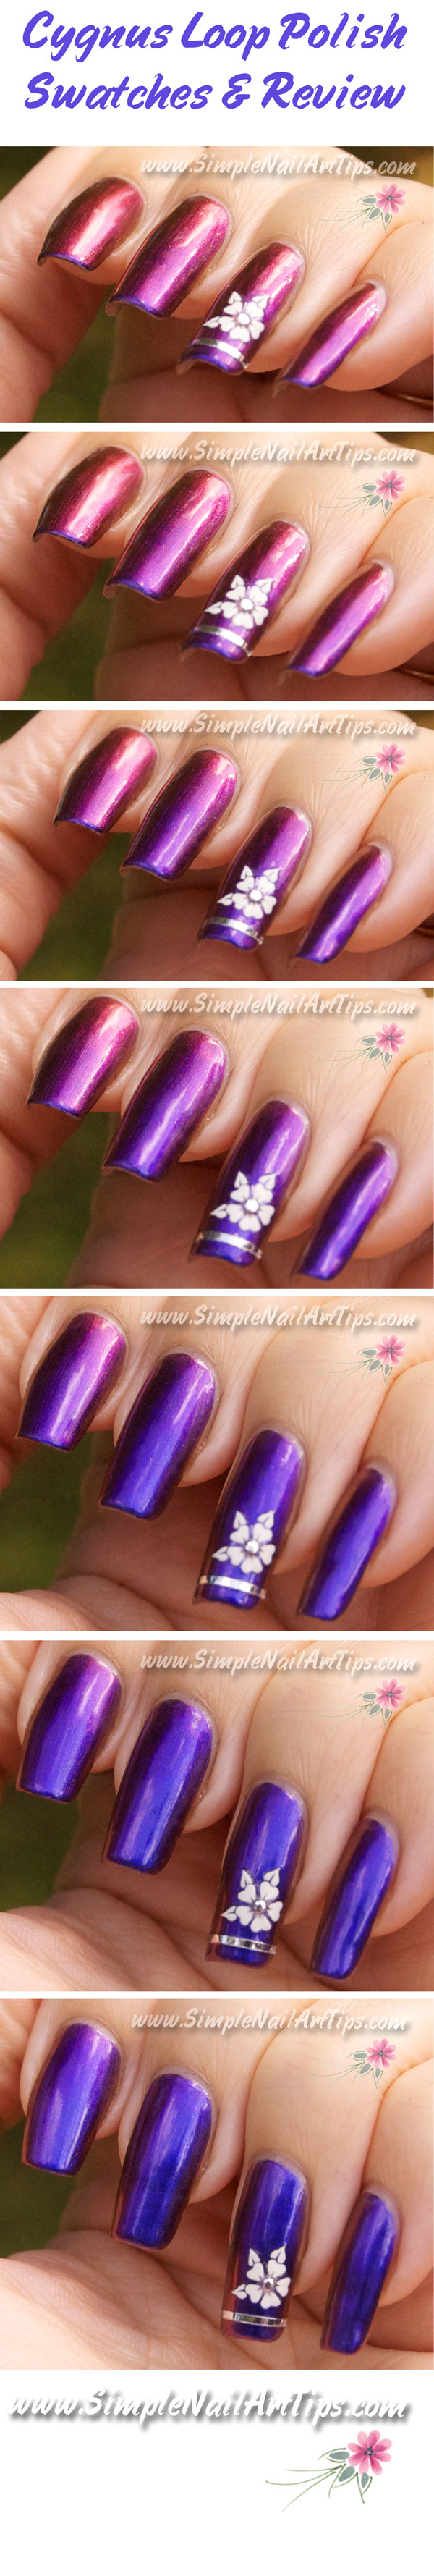 cygnus loop swatch review shift Cygnus Loop Polish Review and Swatches